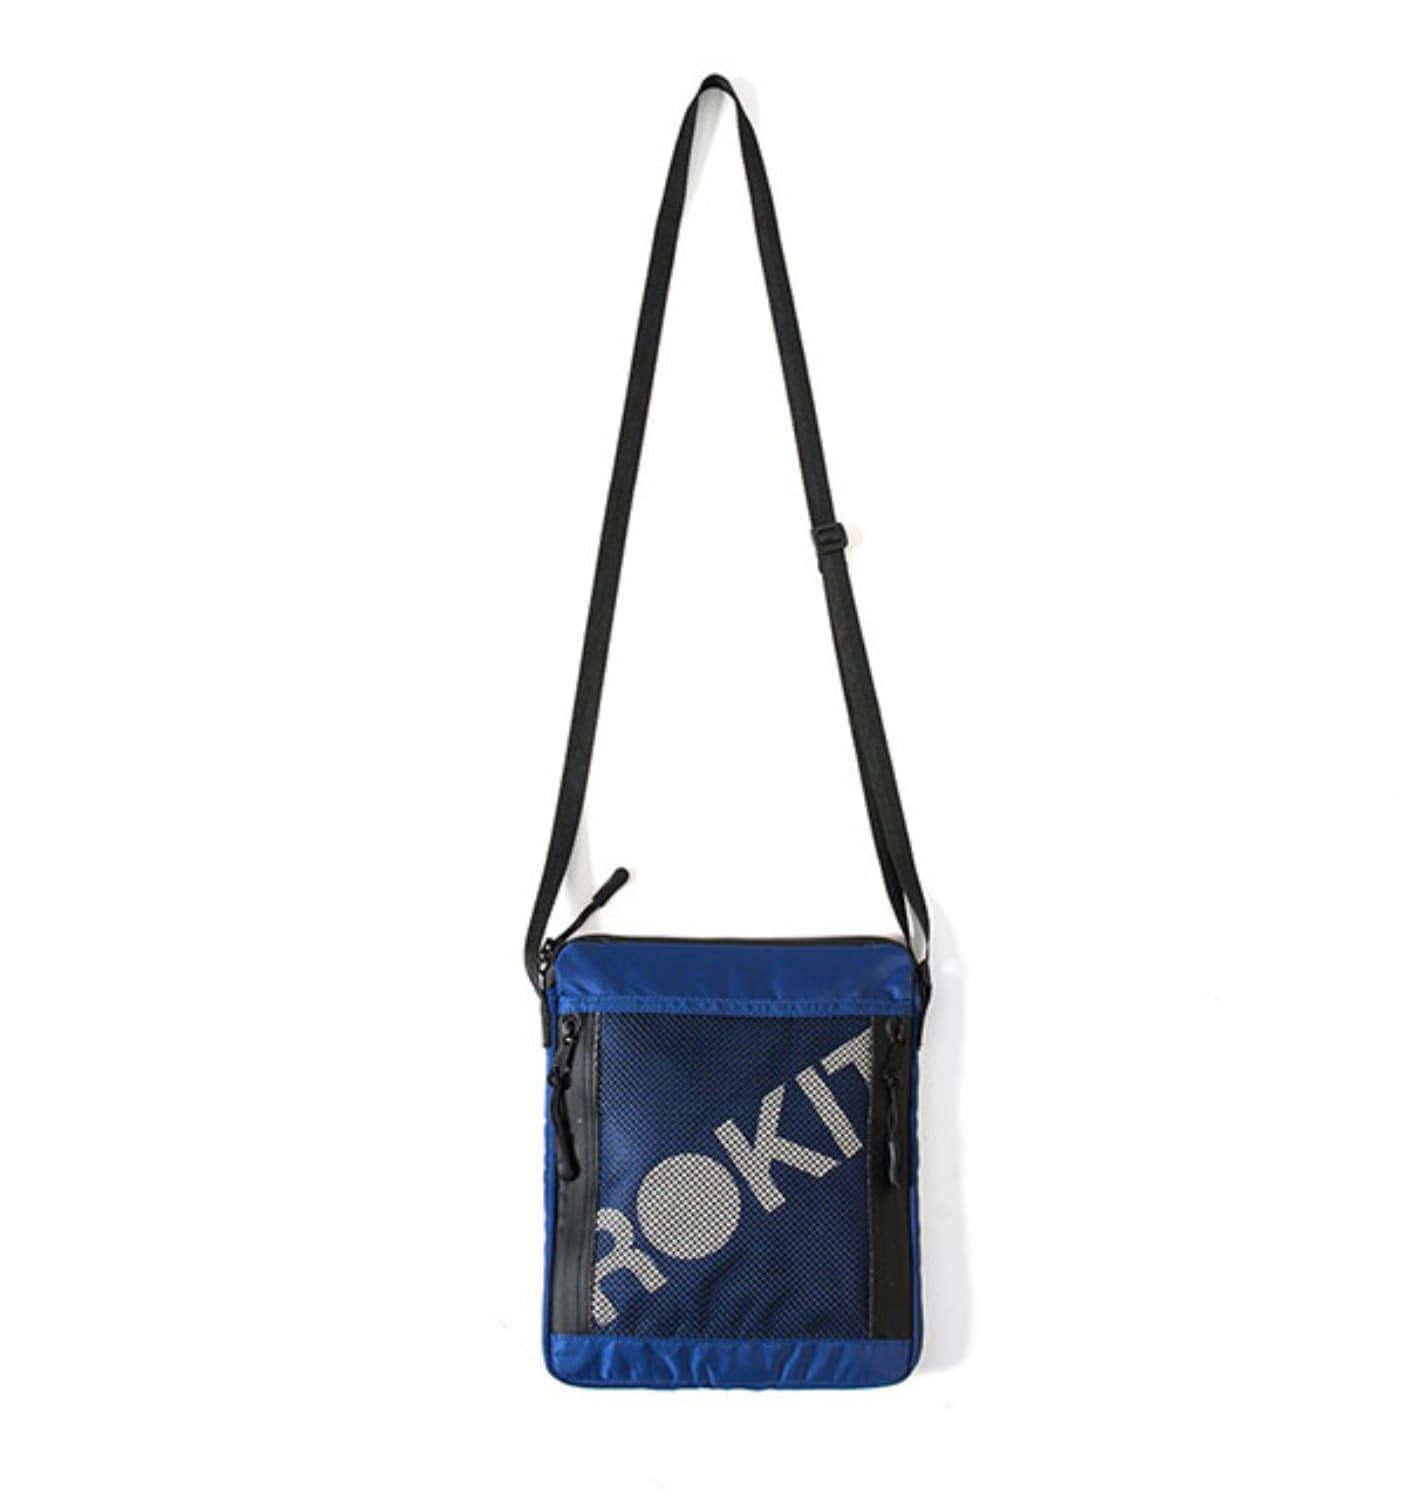 THE CUSTOMS SIDEBAG ROYAL BLUE